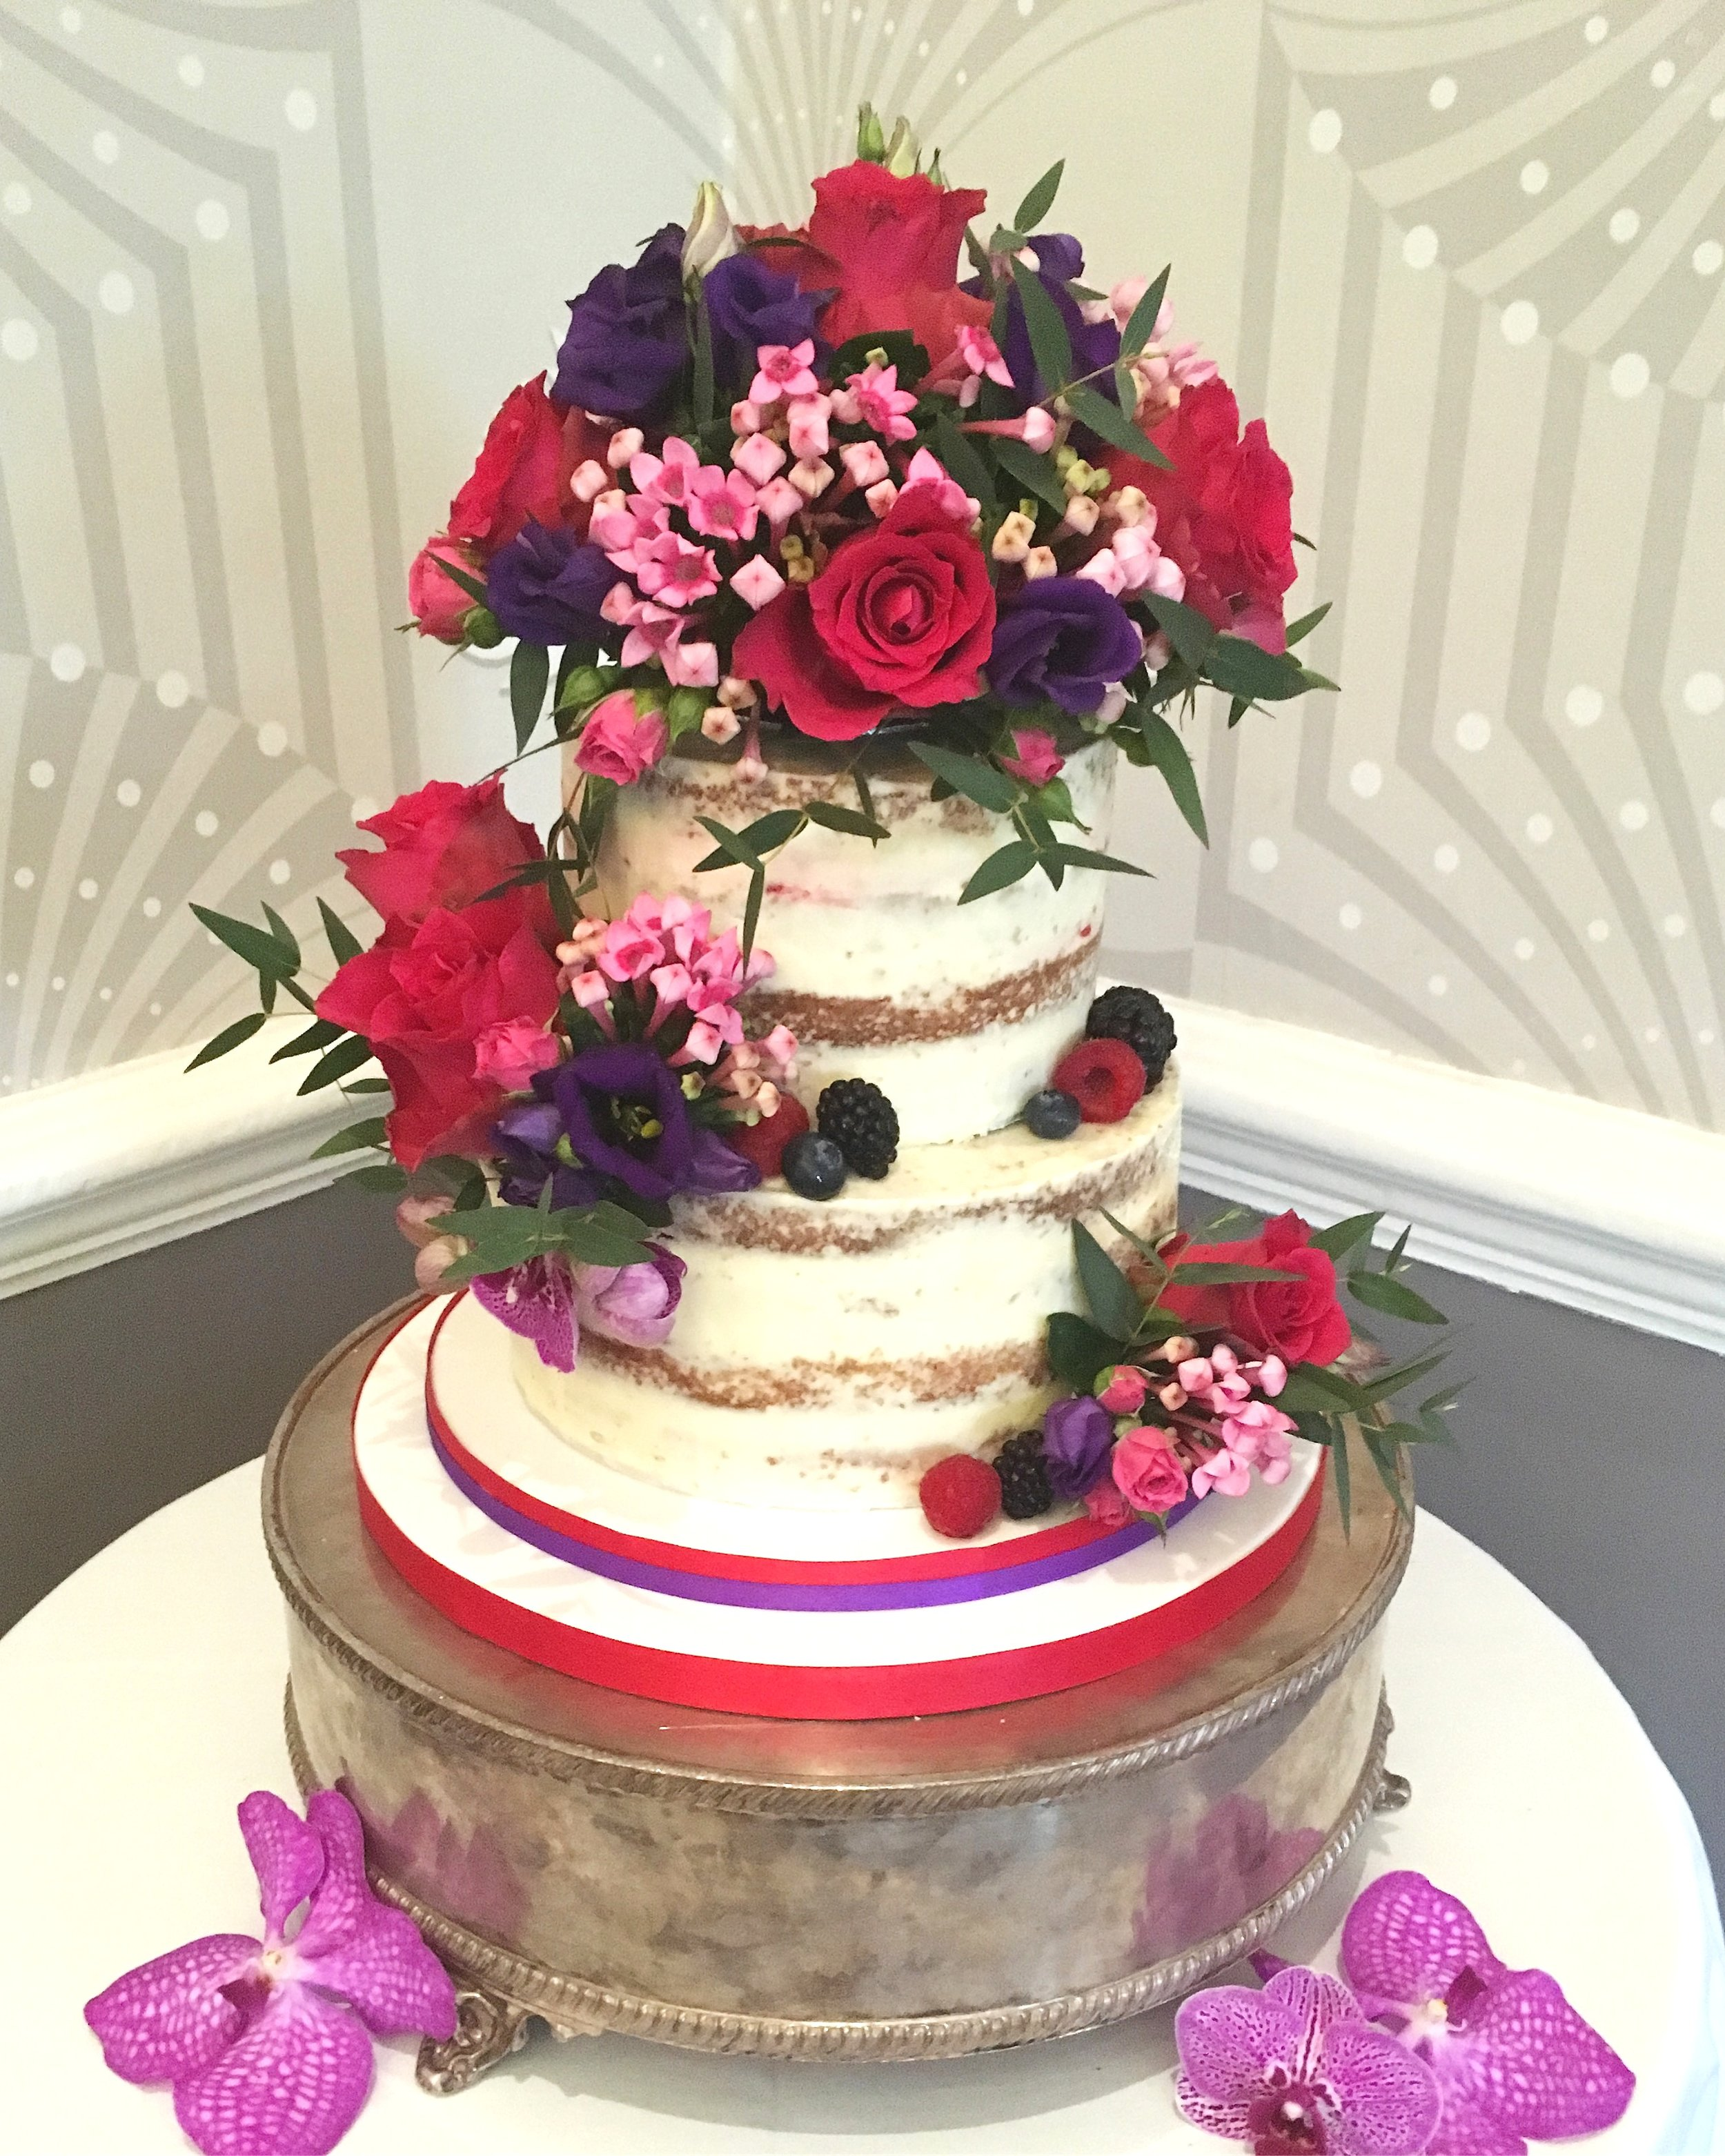 2 tier semi-naked wedding cake